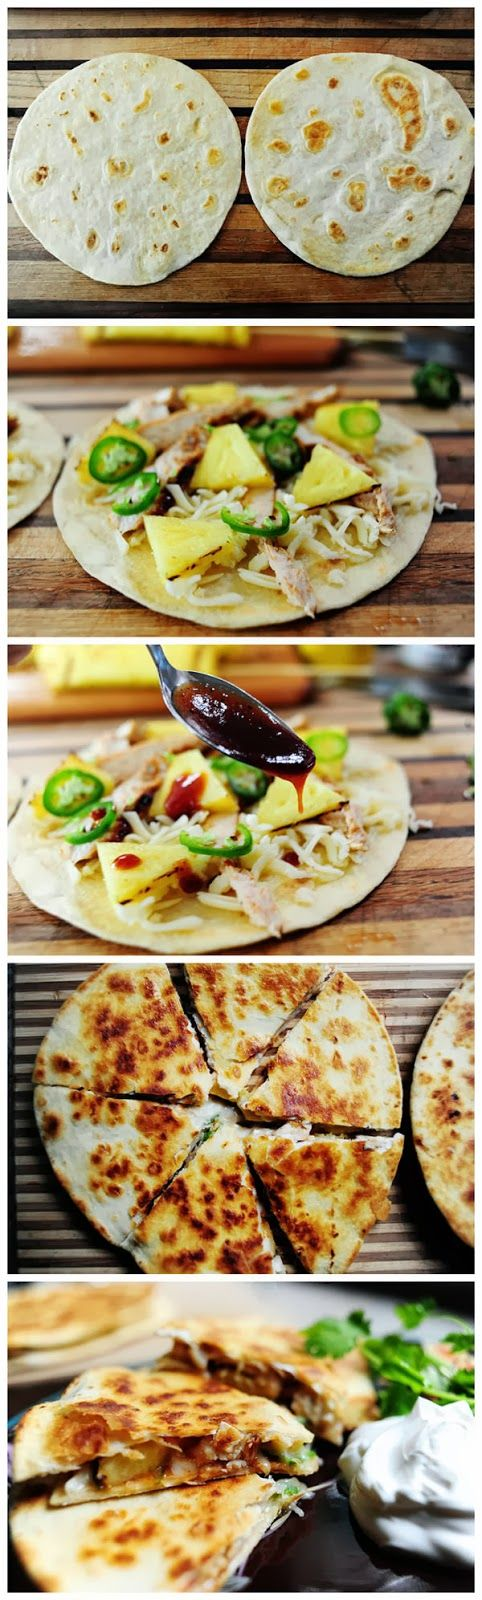 chicken quesadilla asian quesadilla with chicken zucchini hoisin sauce ...